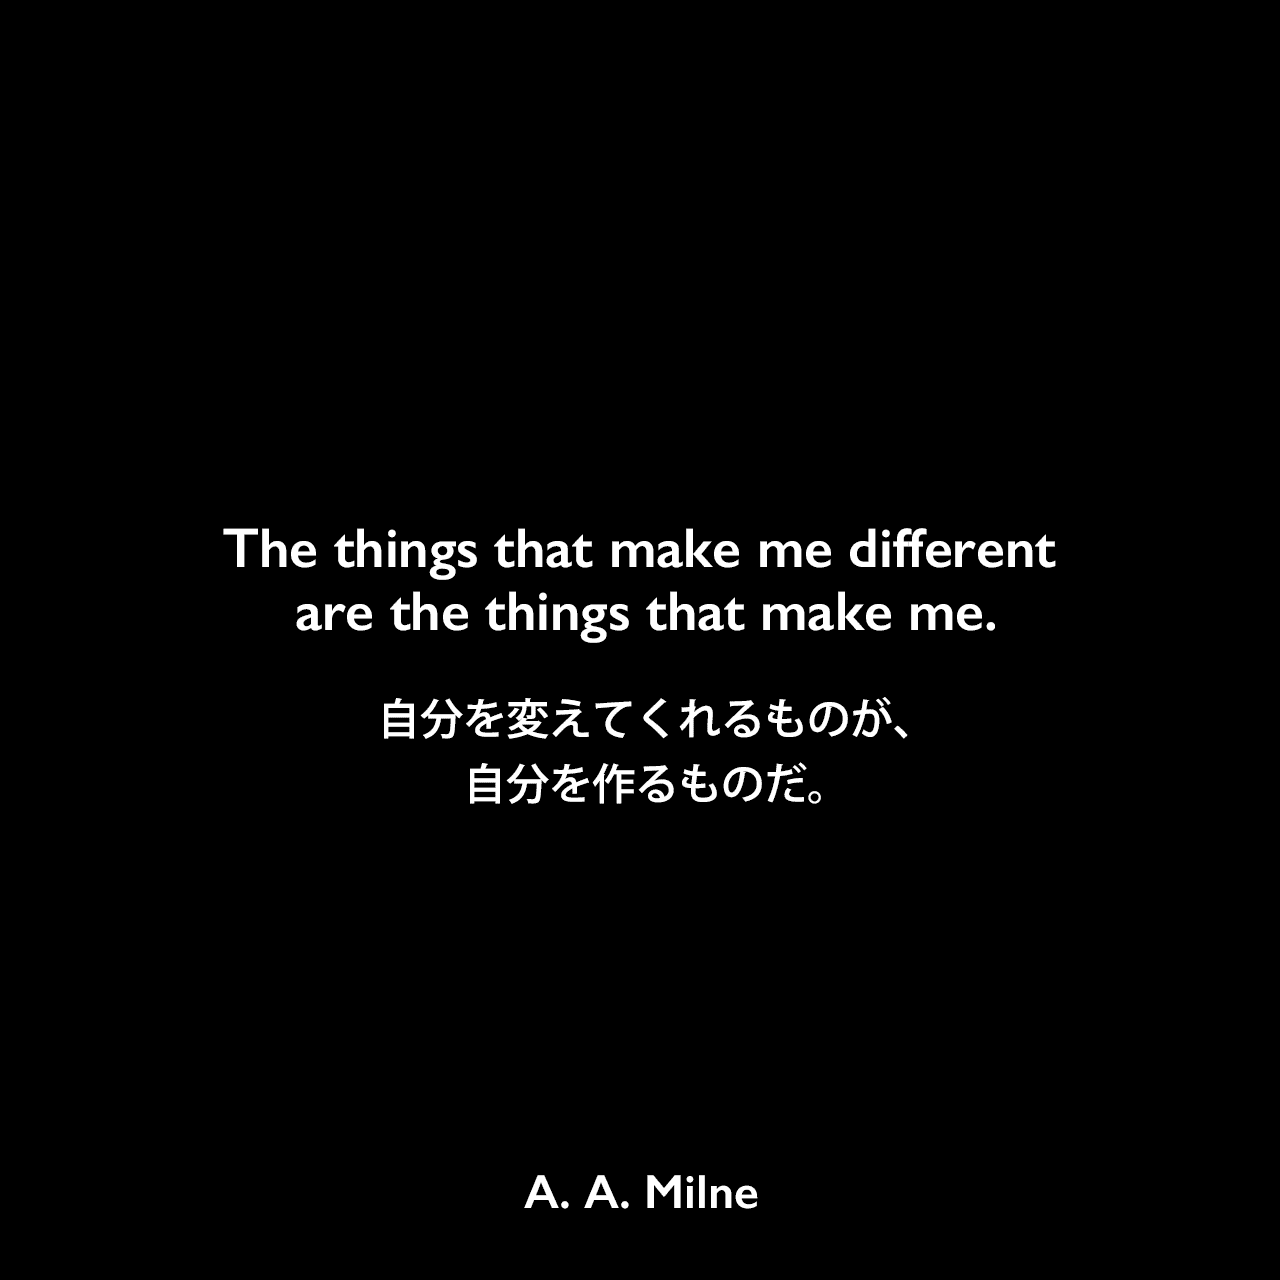 The things that make me different are the things that make me.自分を変えてくれるものが、自分を作るものだ。A. A. Milne